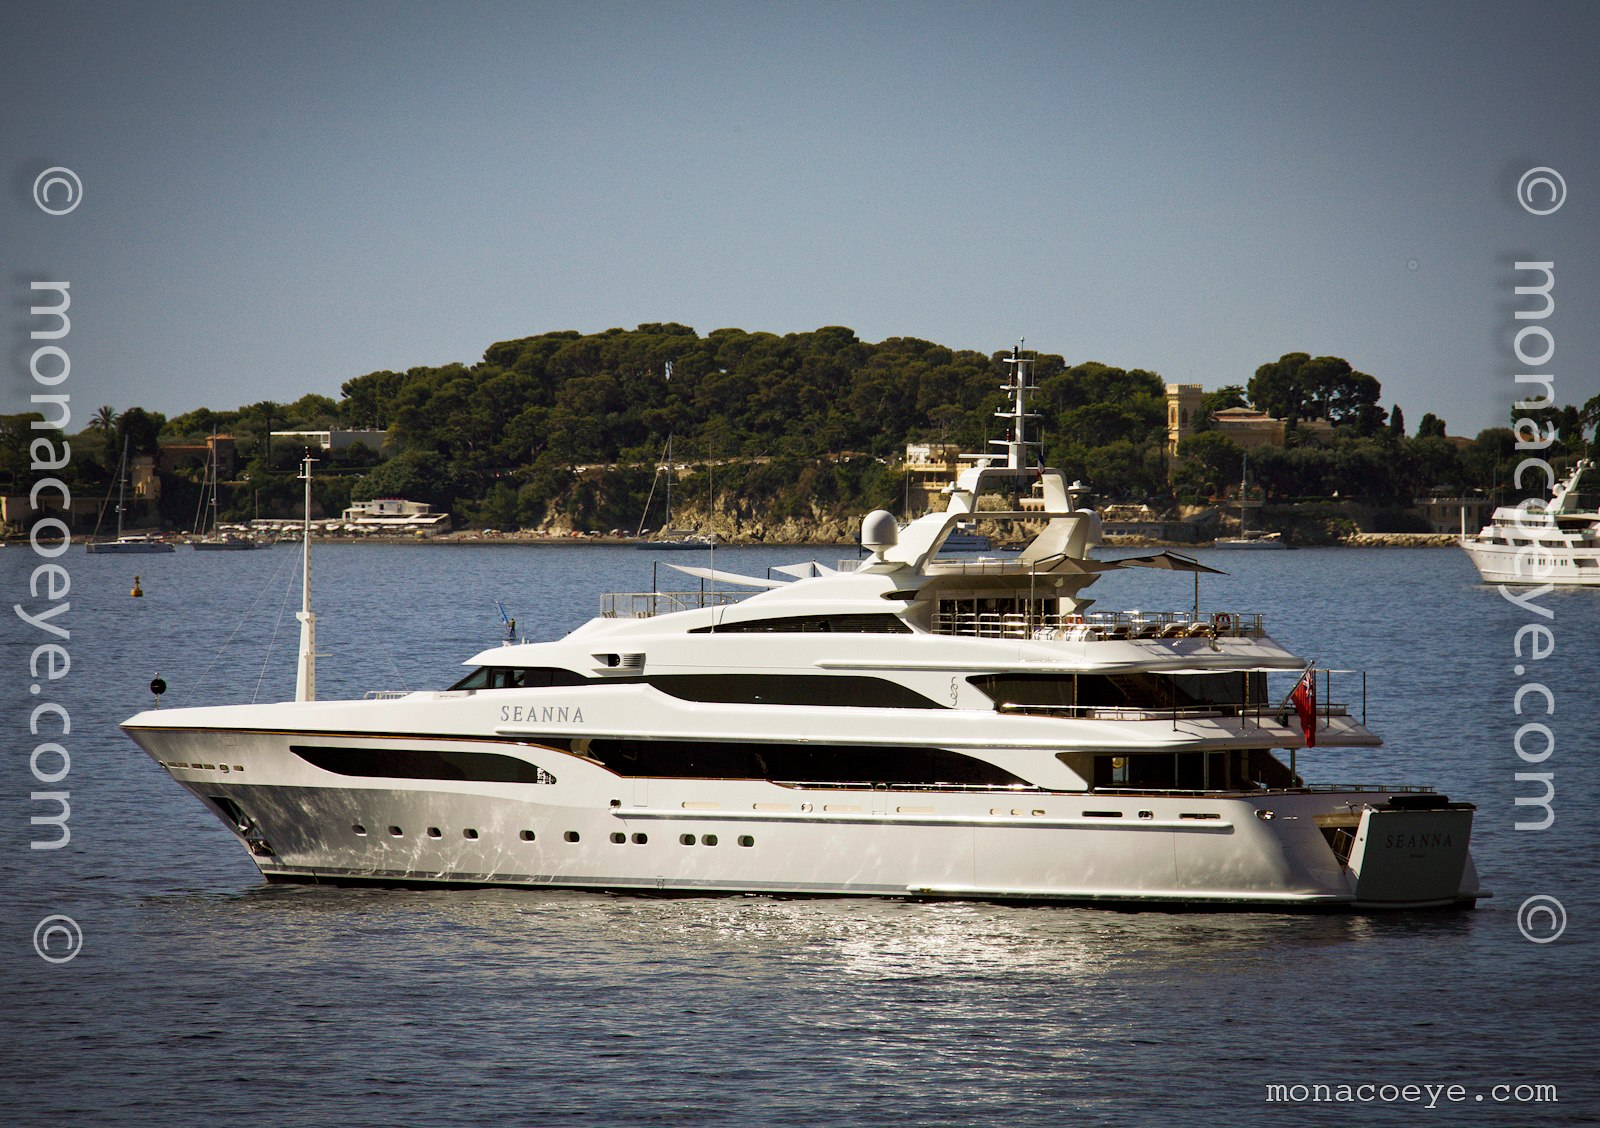 Seanna, 2011 design from Benetti Yachts and Redman Whitely Dixon